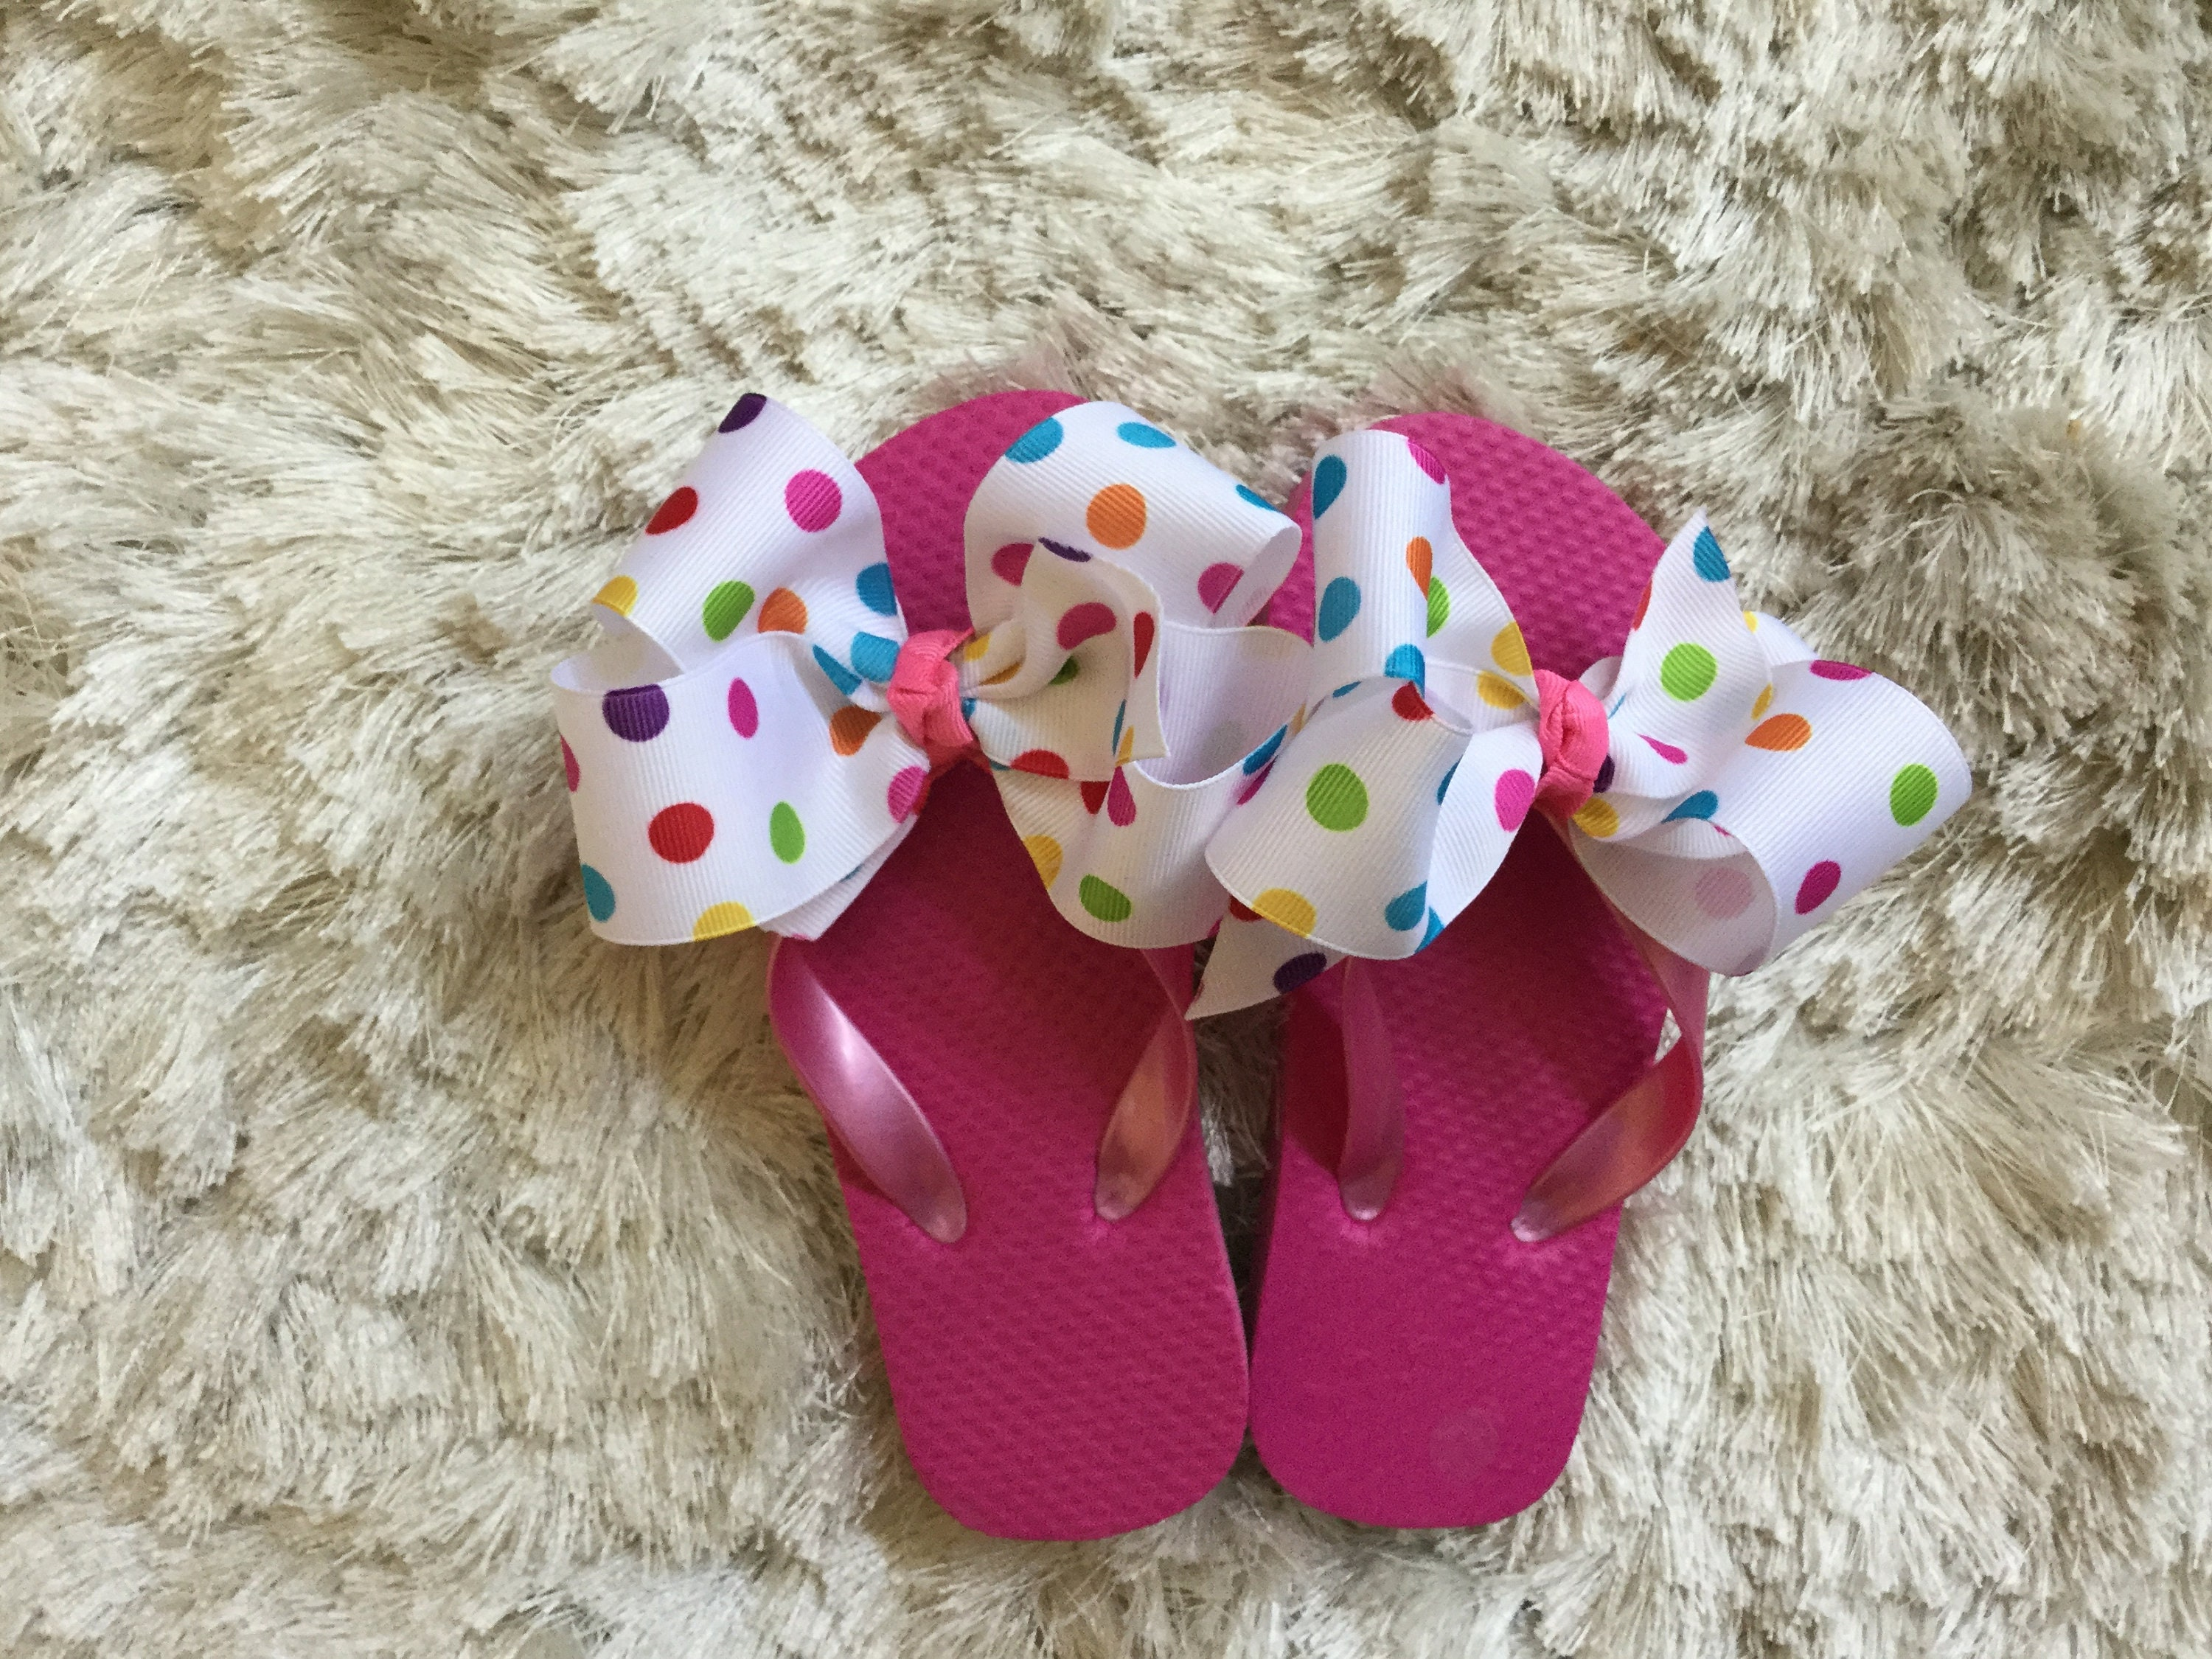 e8437eac2 Childrens Hot Pink   Multi Polka Dot Bow Flip Flops. gallery photo ...